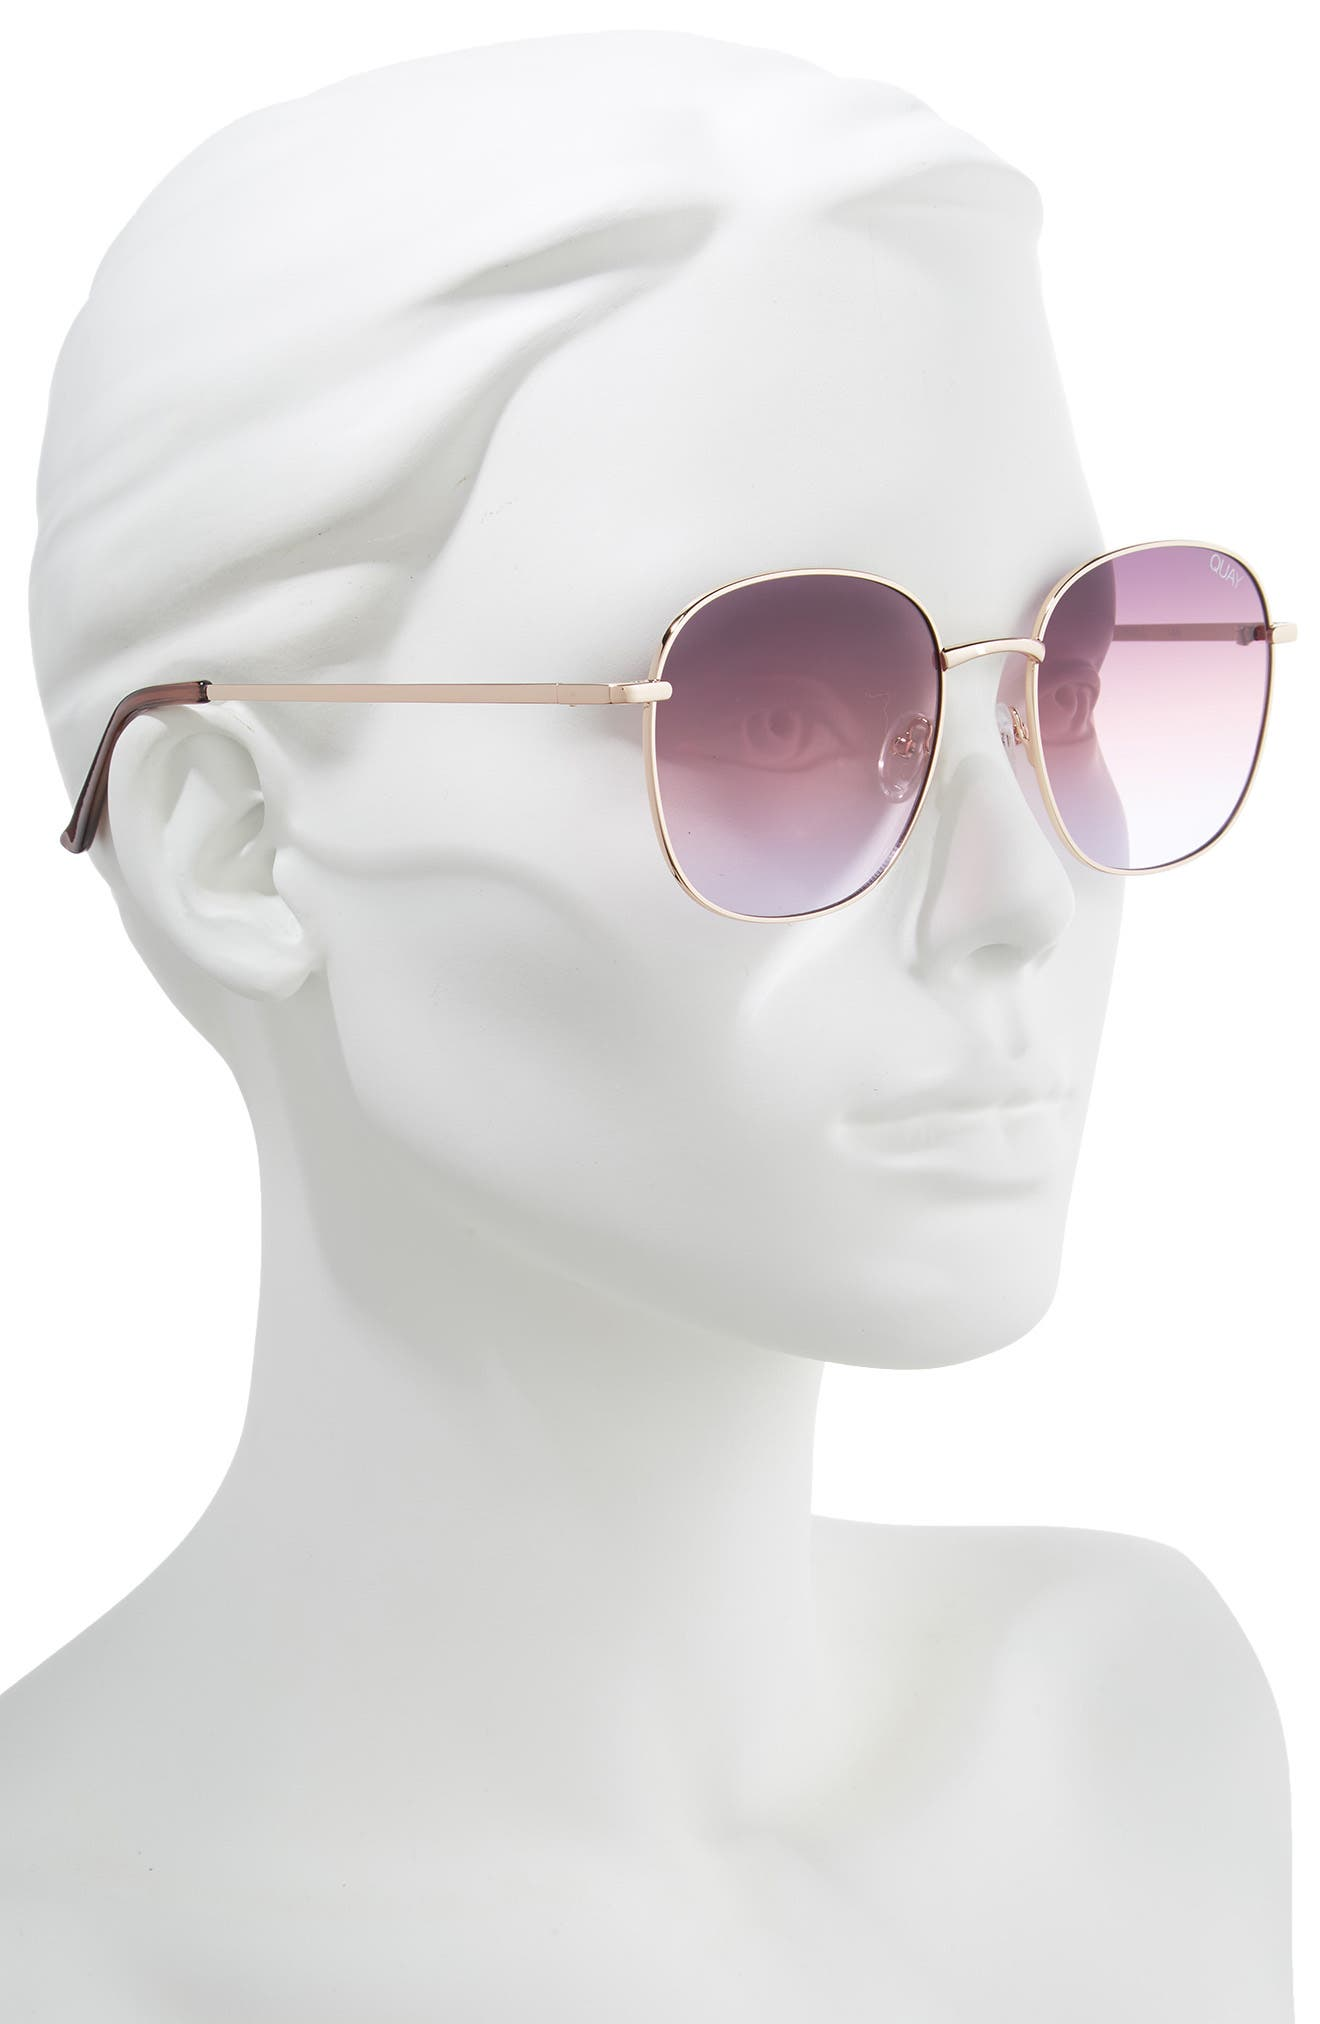 Jezabell 57mm Round Sunglasses,                             Alternate thumbnail 2, color,                             ROSE / PURPLE PINK FADE